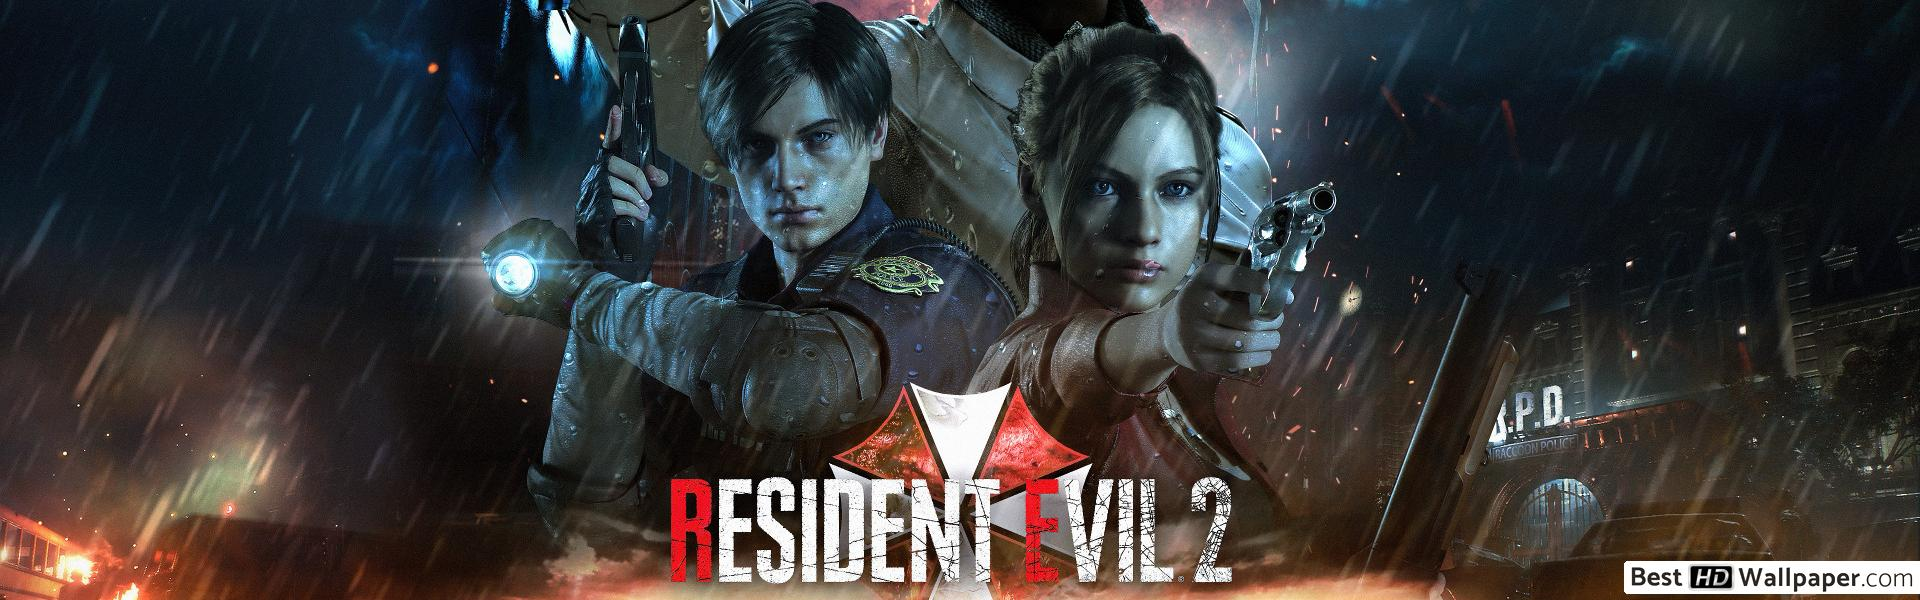 Resident Evil 2 Remake Wallpaper Hd Posted By Ethan Sellers